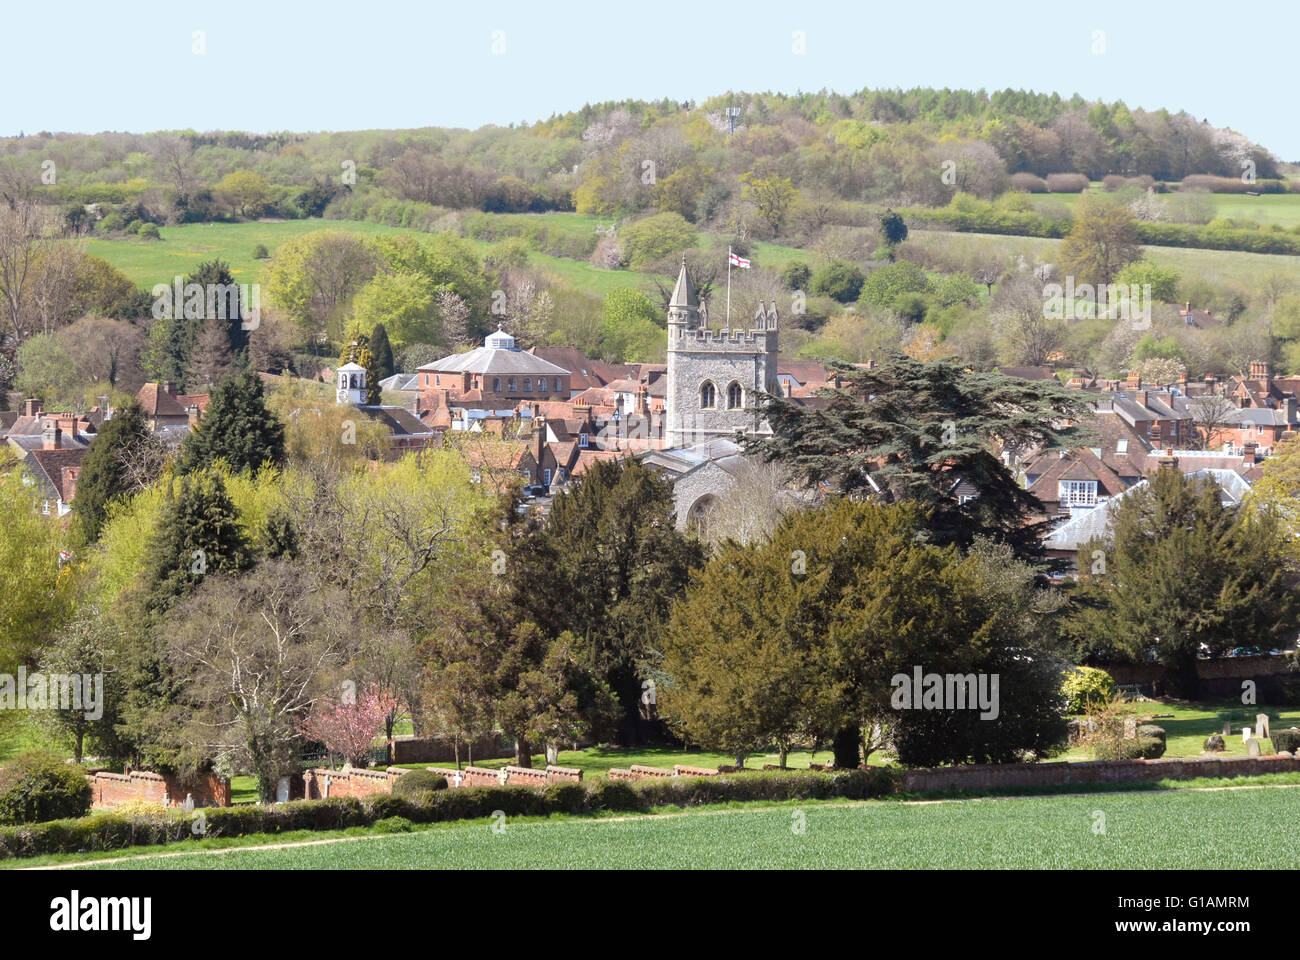 Bucks - Chiltern Hills - view over old Amersham town - rooftops-church tower -mature trees - wooded hillsides - - Stock Image